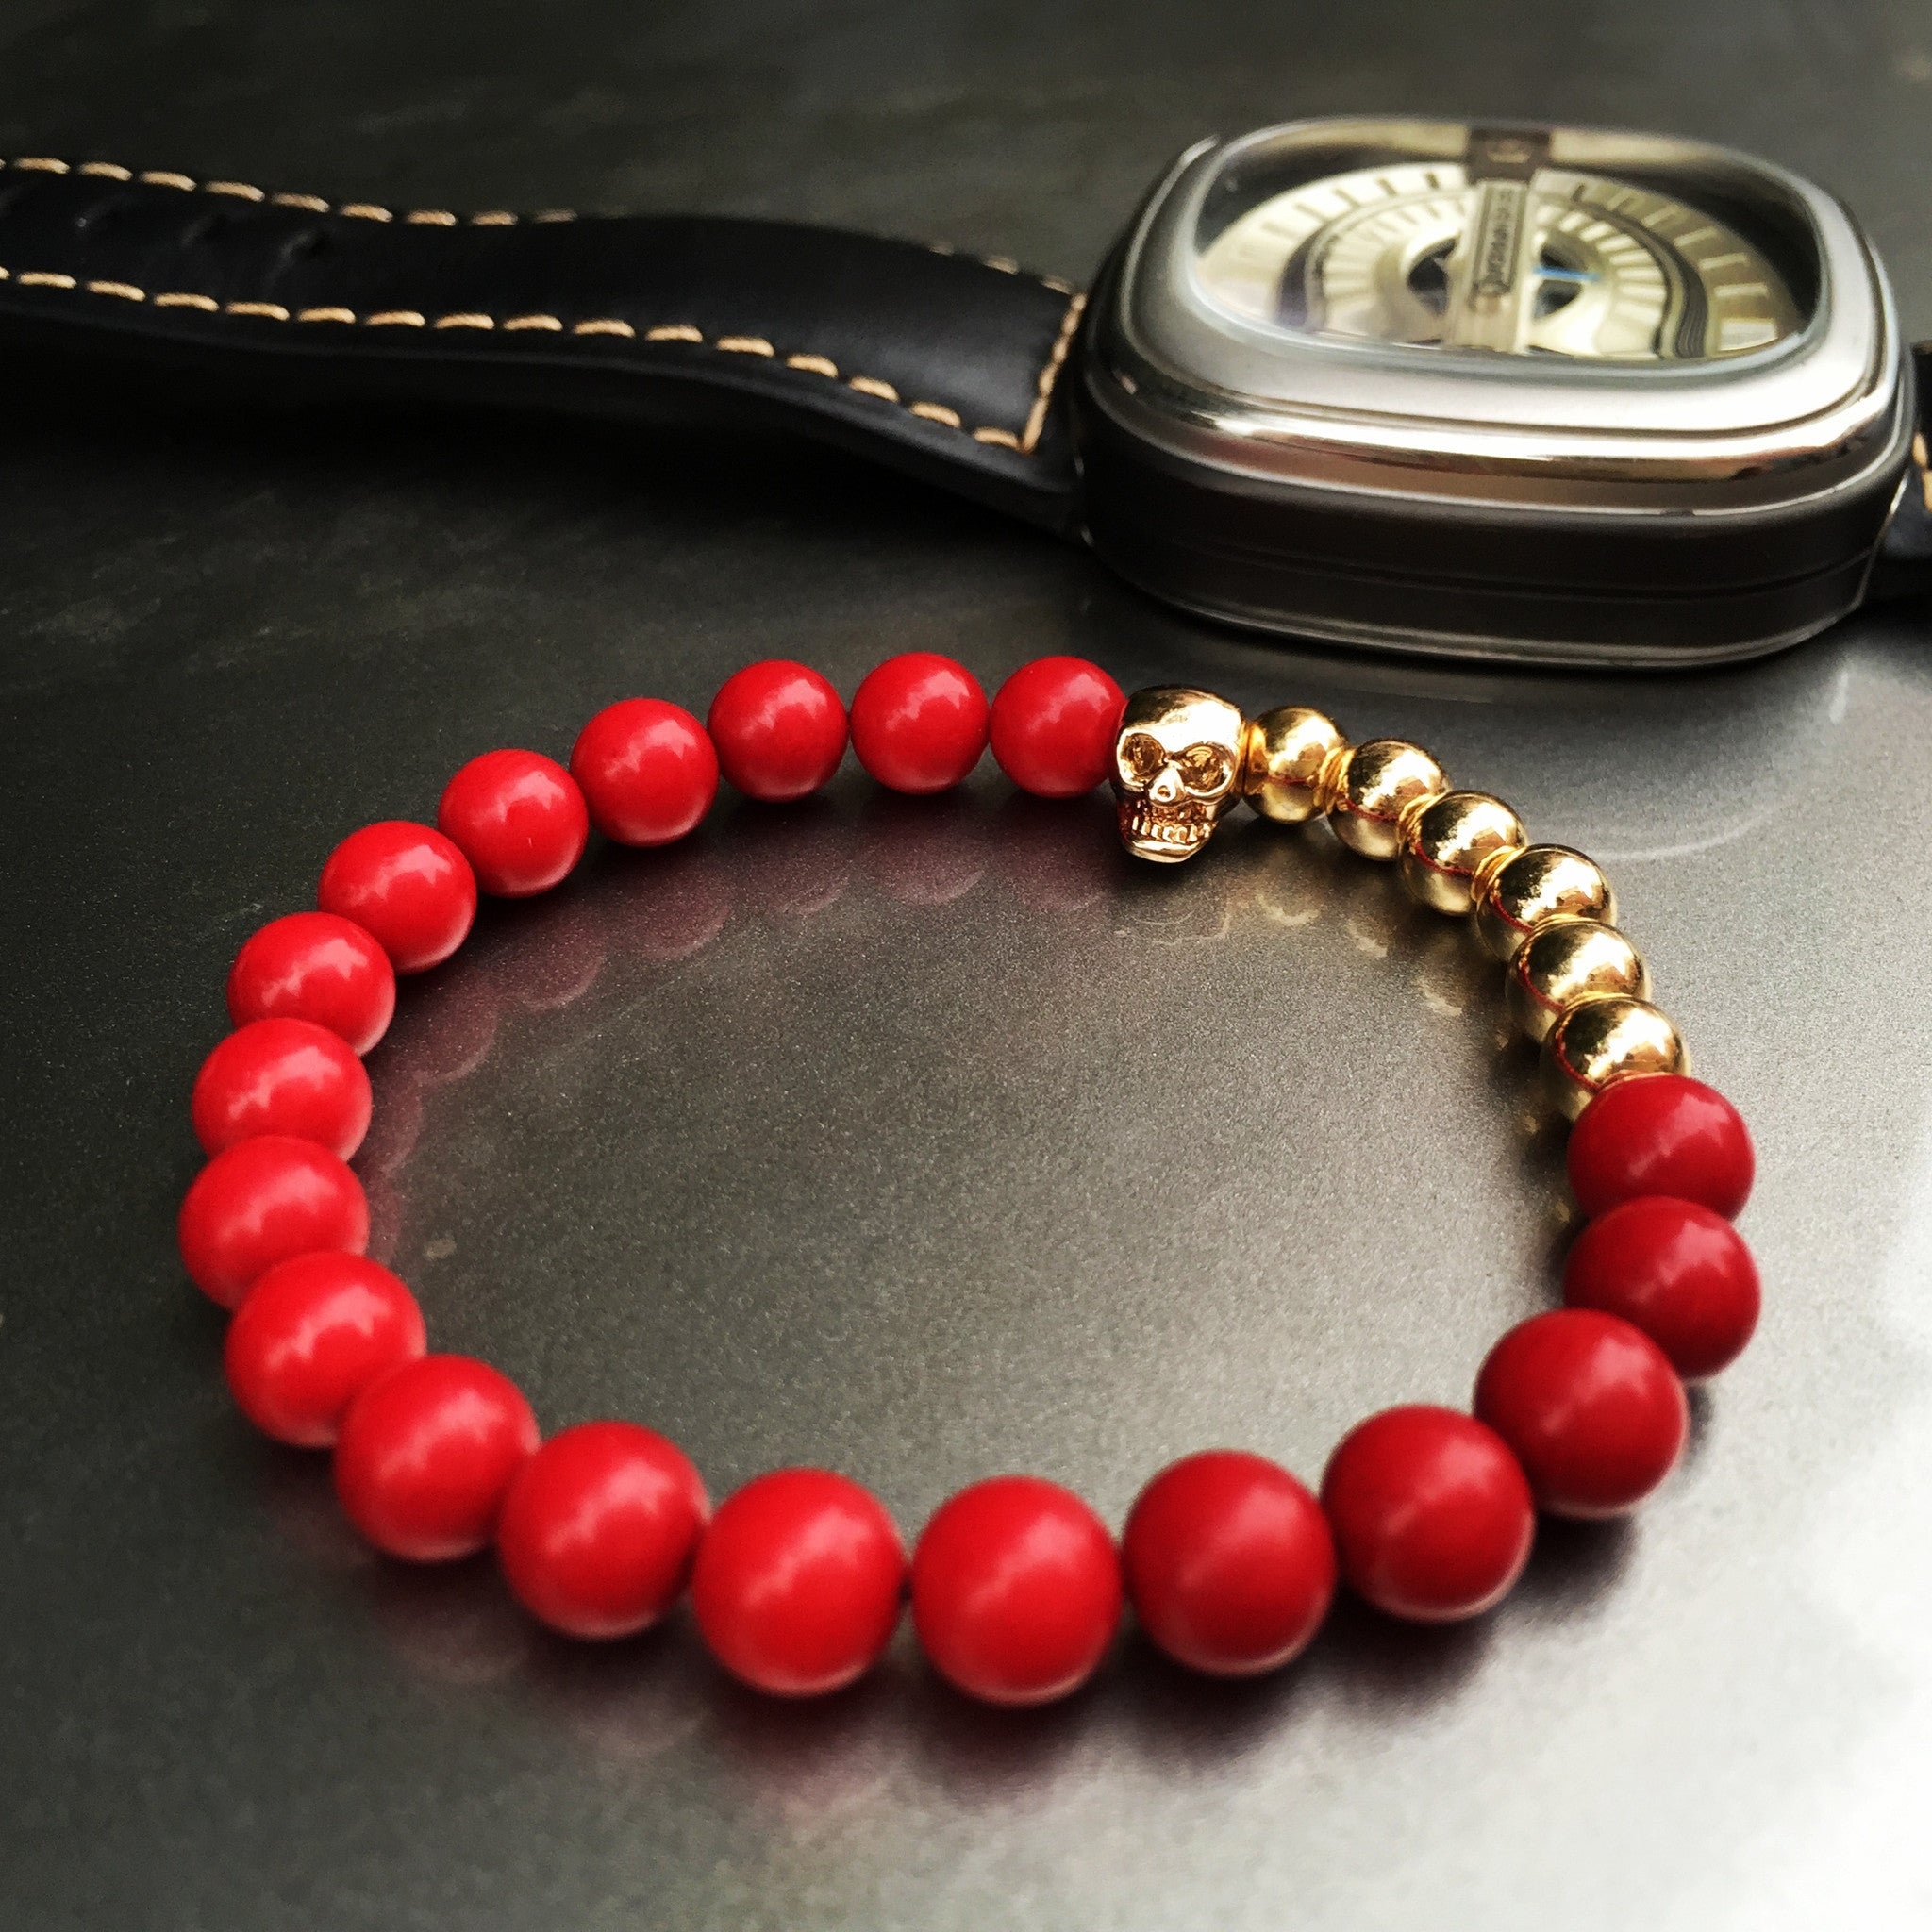 girl north northskull bracelet coral high new quality red men products skull fashion bracelets rock women charm